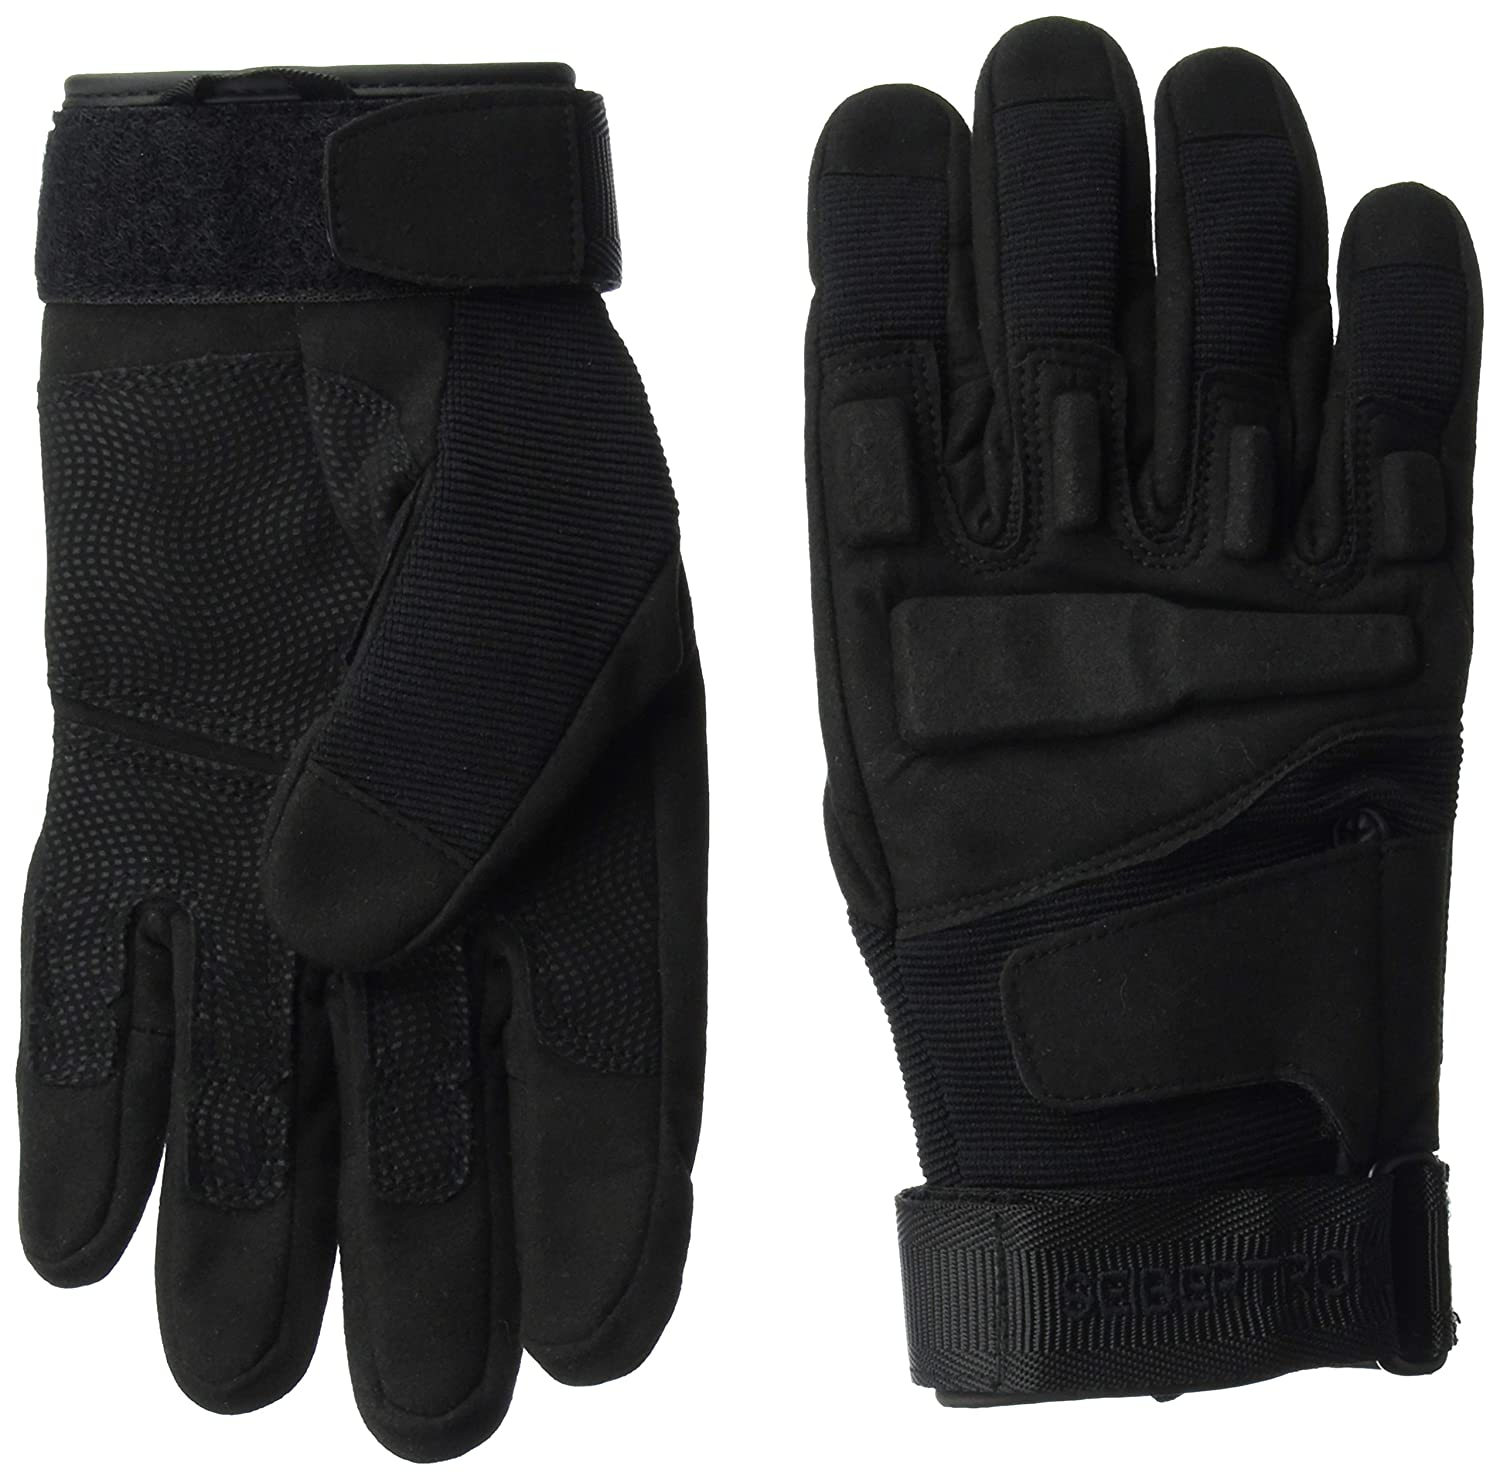 Black leather combat gloves - Amazon Com Seibertron Men S S O L A G Special Ops Full Finger Tactical Gloves Sports Outdoors